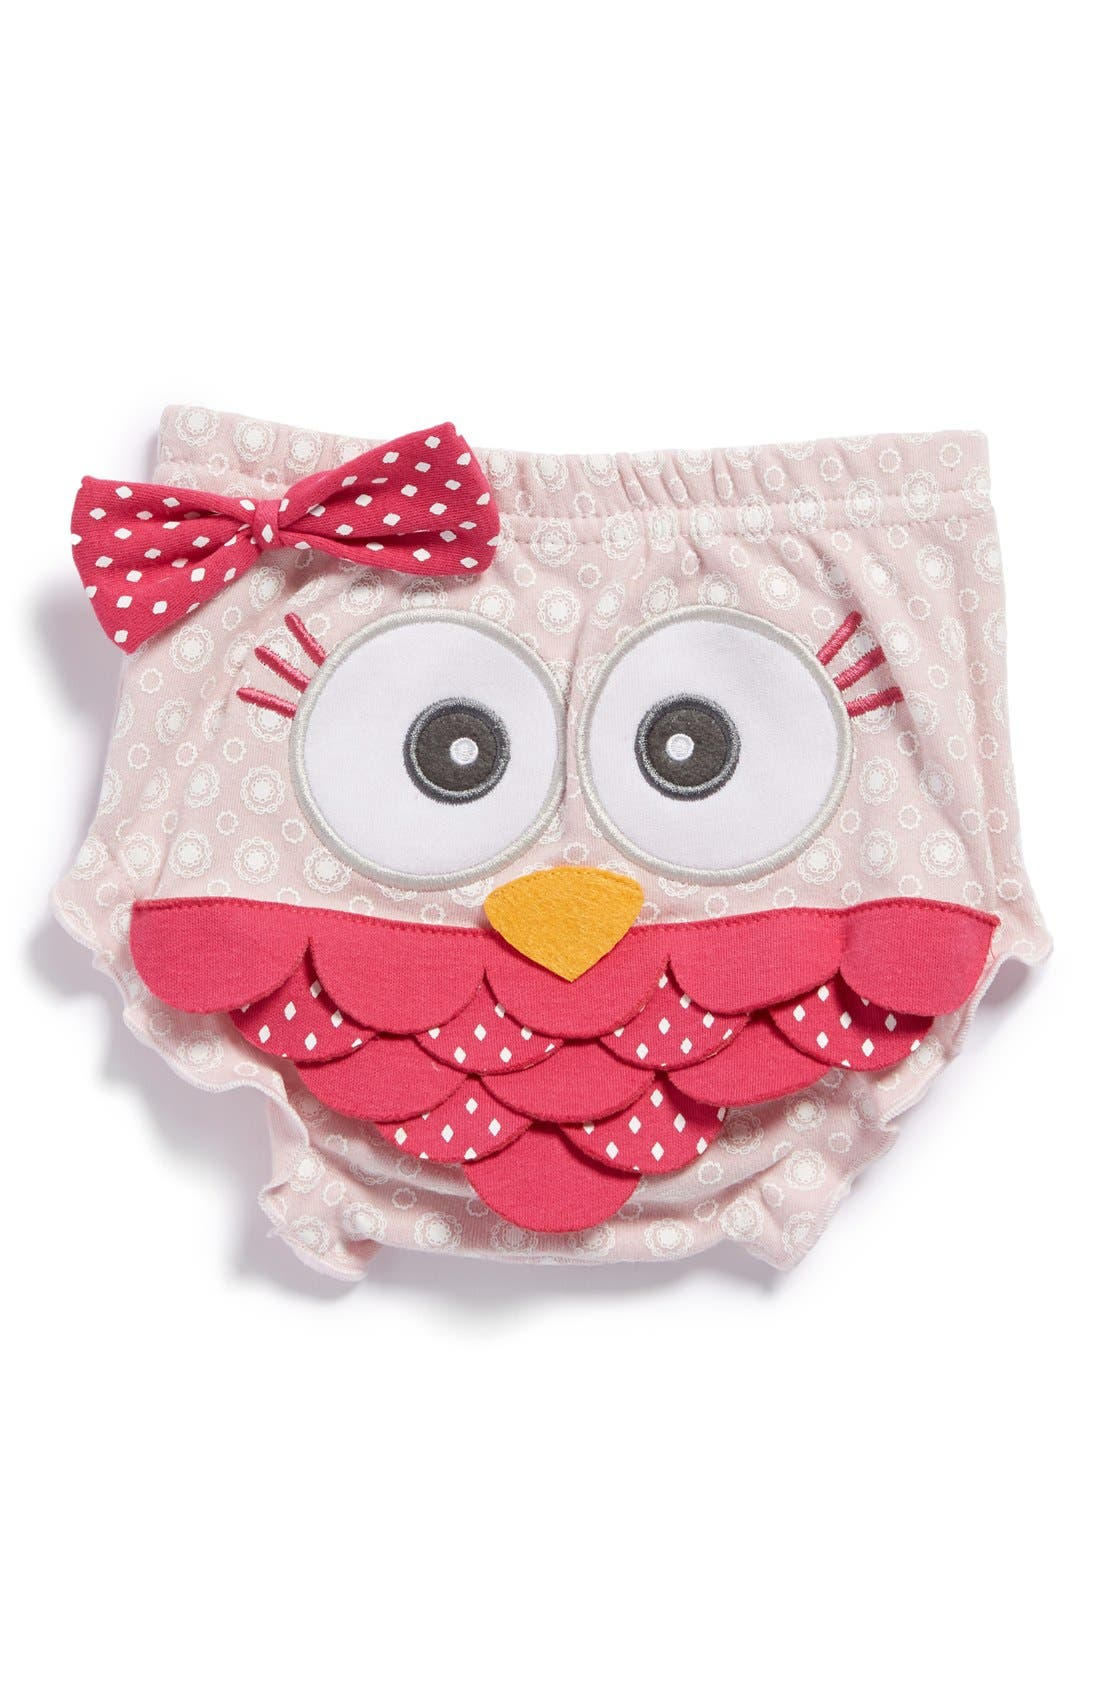 'Whoo's the Cutest?' Owl Bloomers,                             Main thumbnail 1, color,                             650